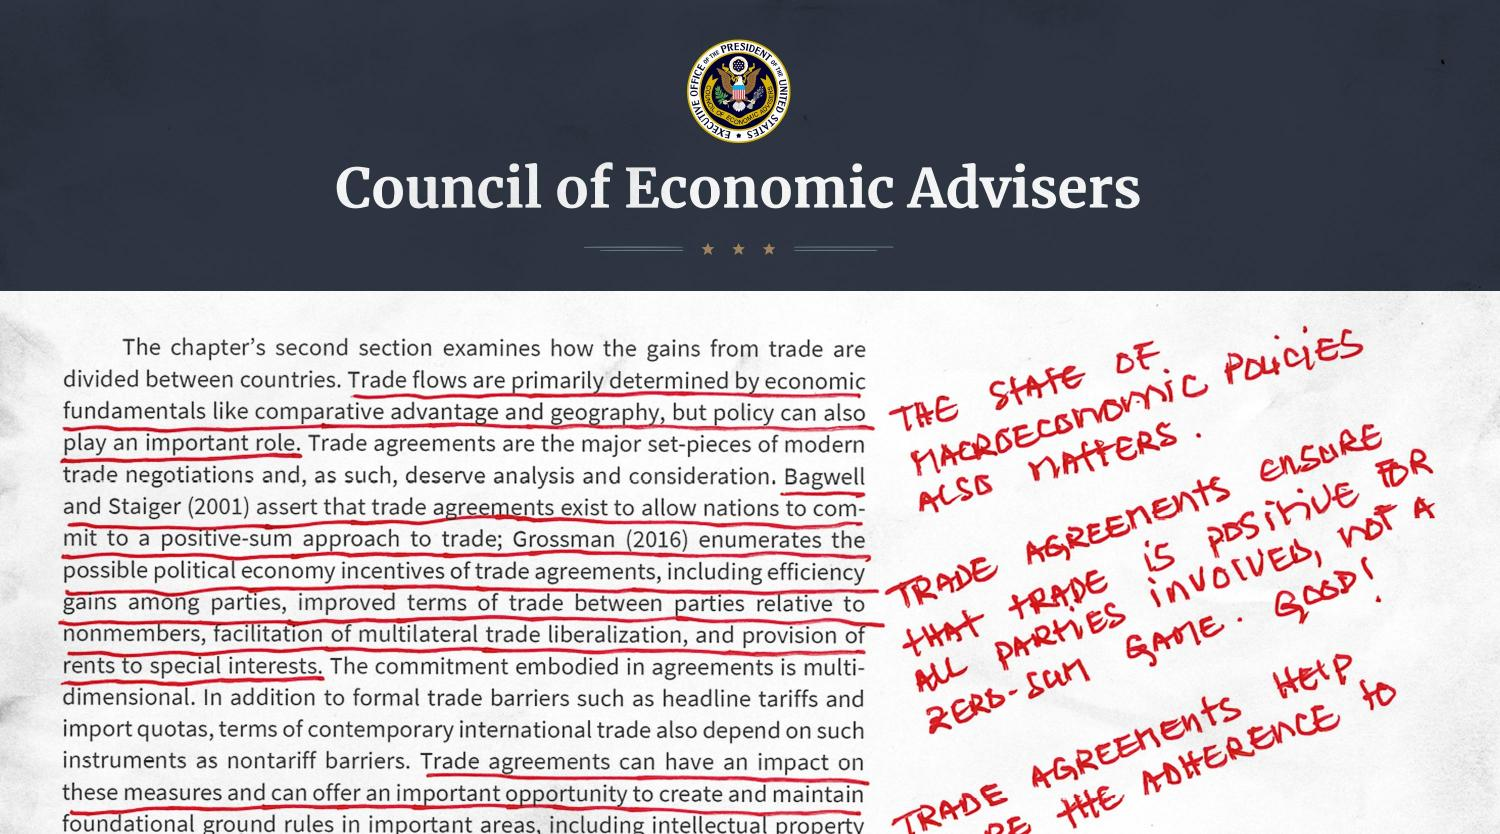 Annual Economic Report of the President, Annotated and Explained